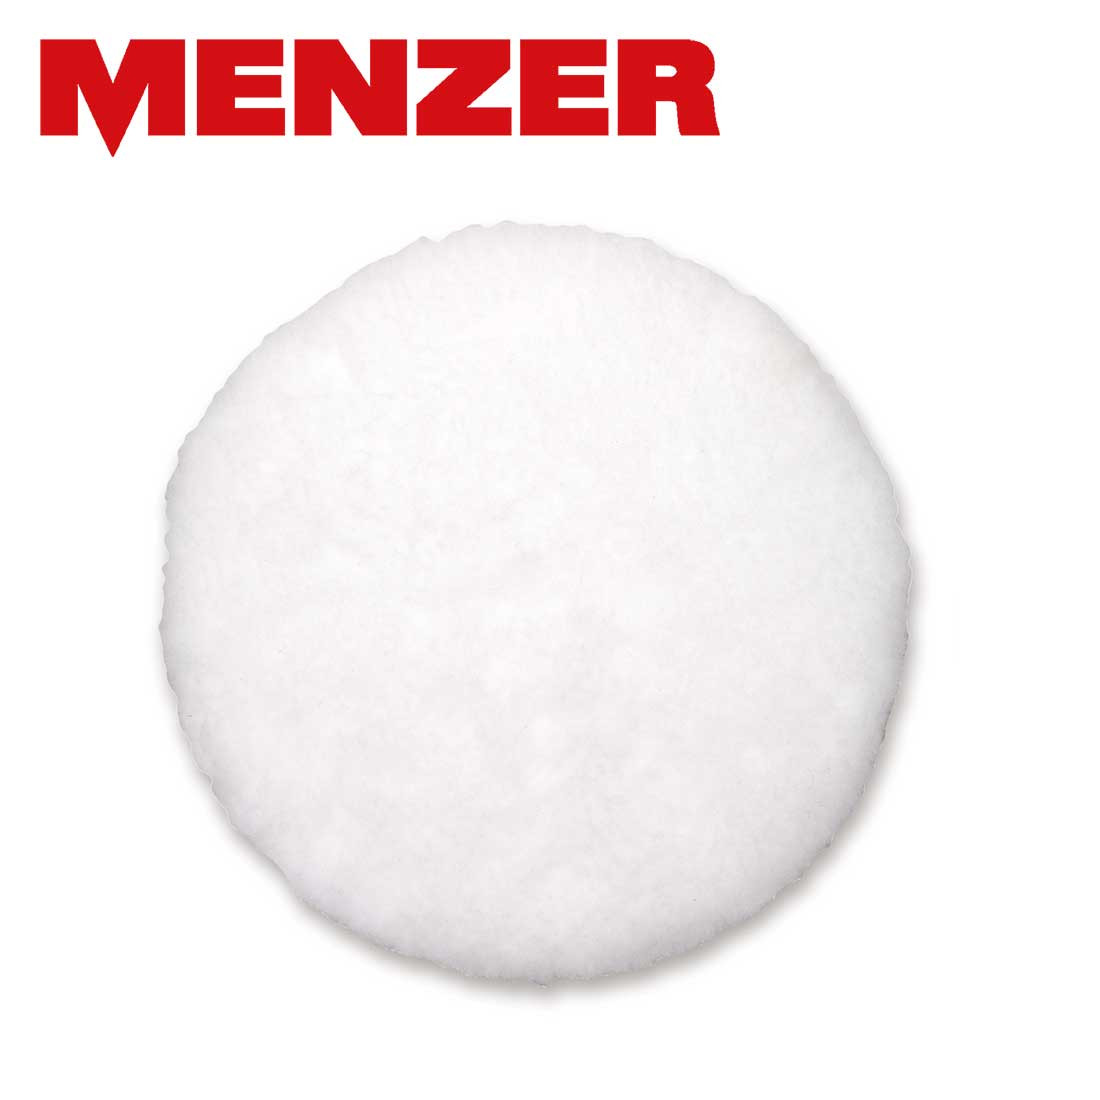 MENZER Wollpad (synthetisch)